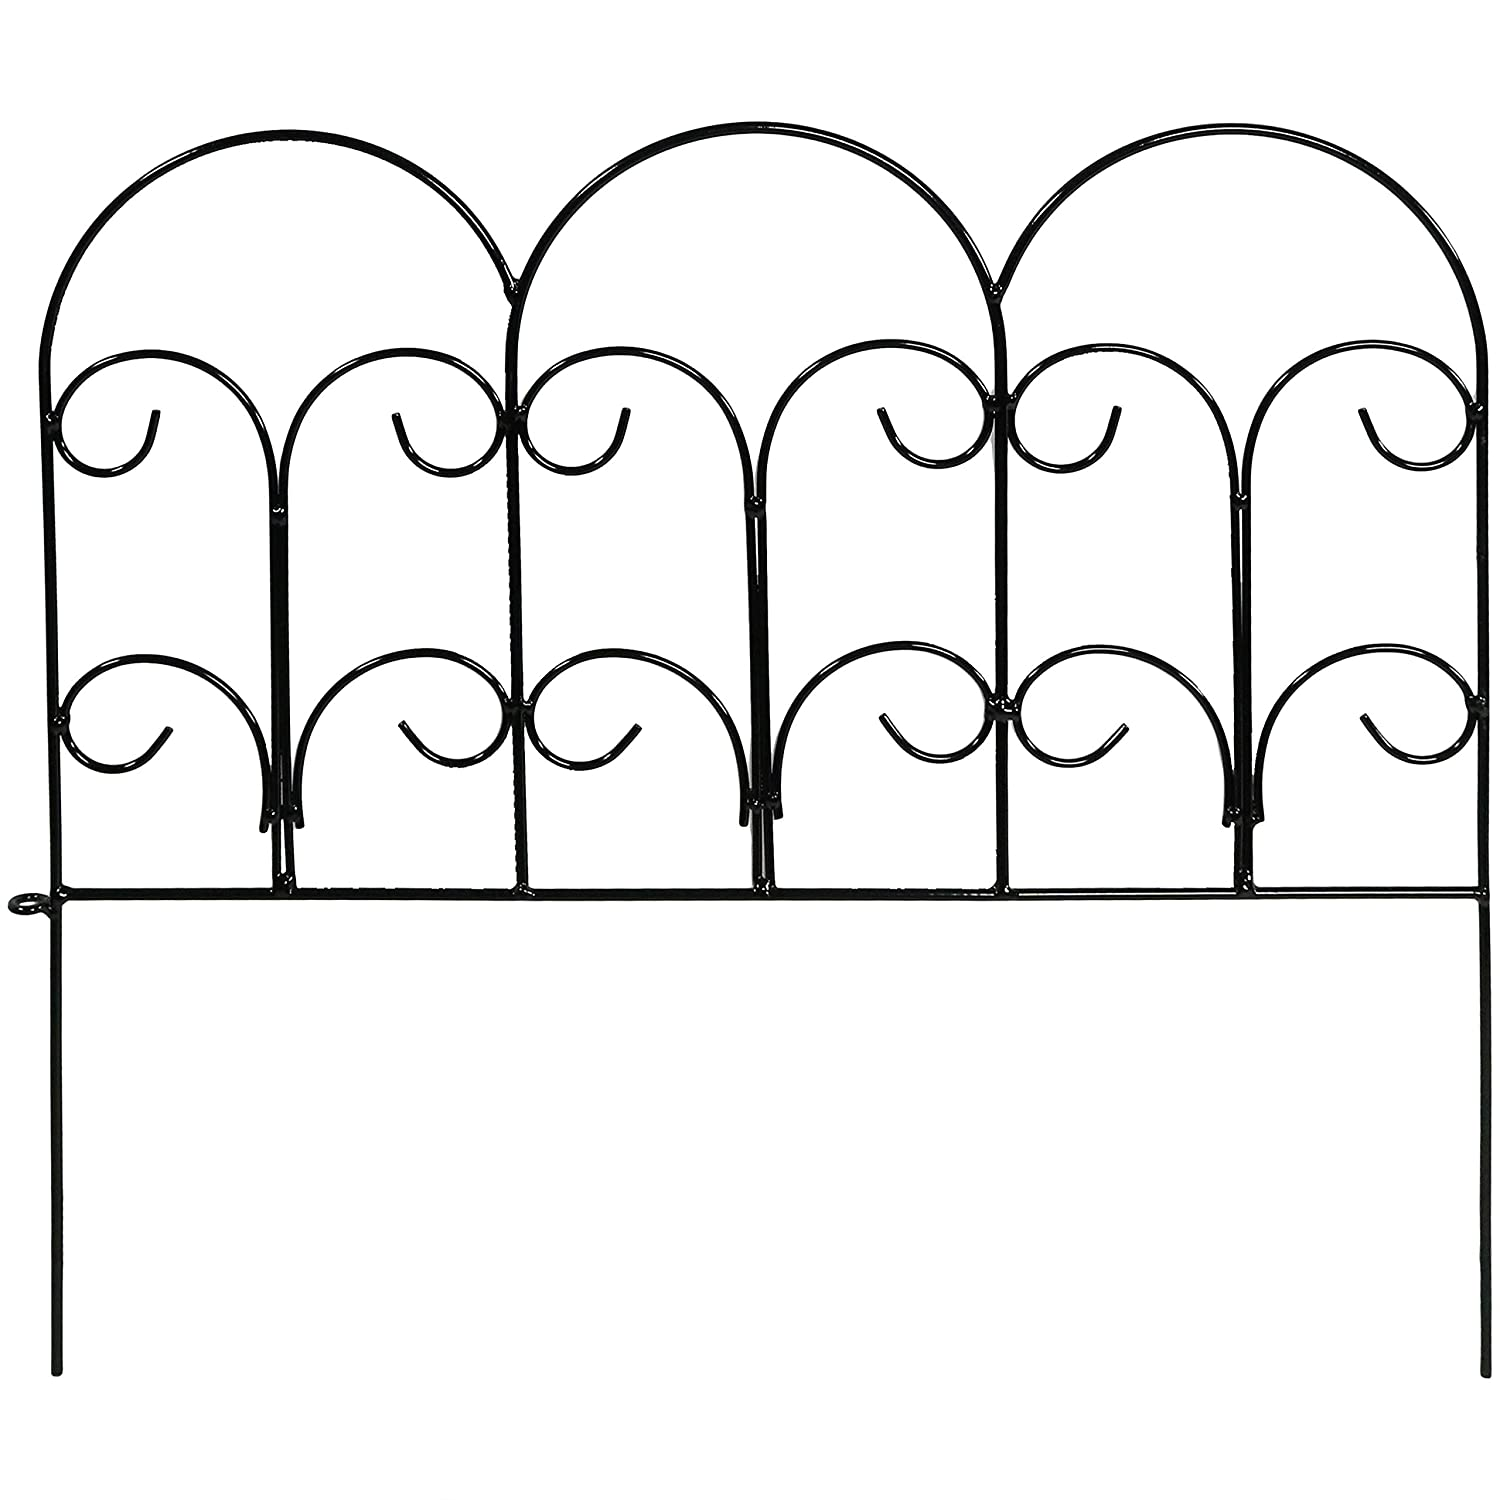 Sunnydaze 5 Piece Victorian Border Fence Set, Decorative Metal Garden Fencing, 16 Inches x 18 Inches Wide Each Piece, 7.5 Feet Overall